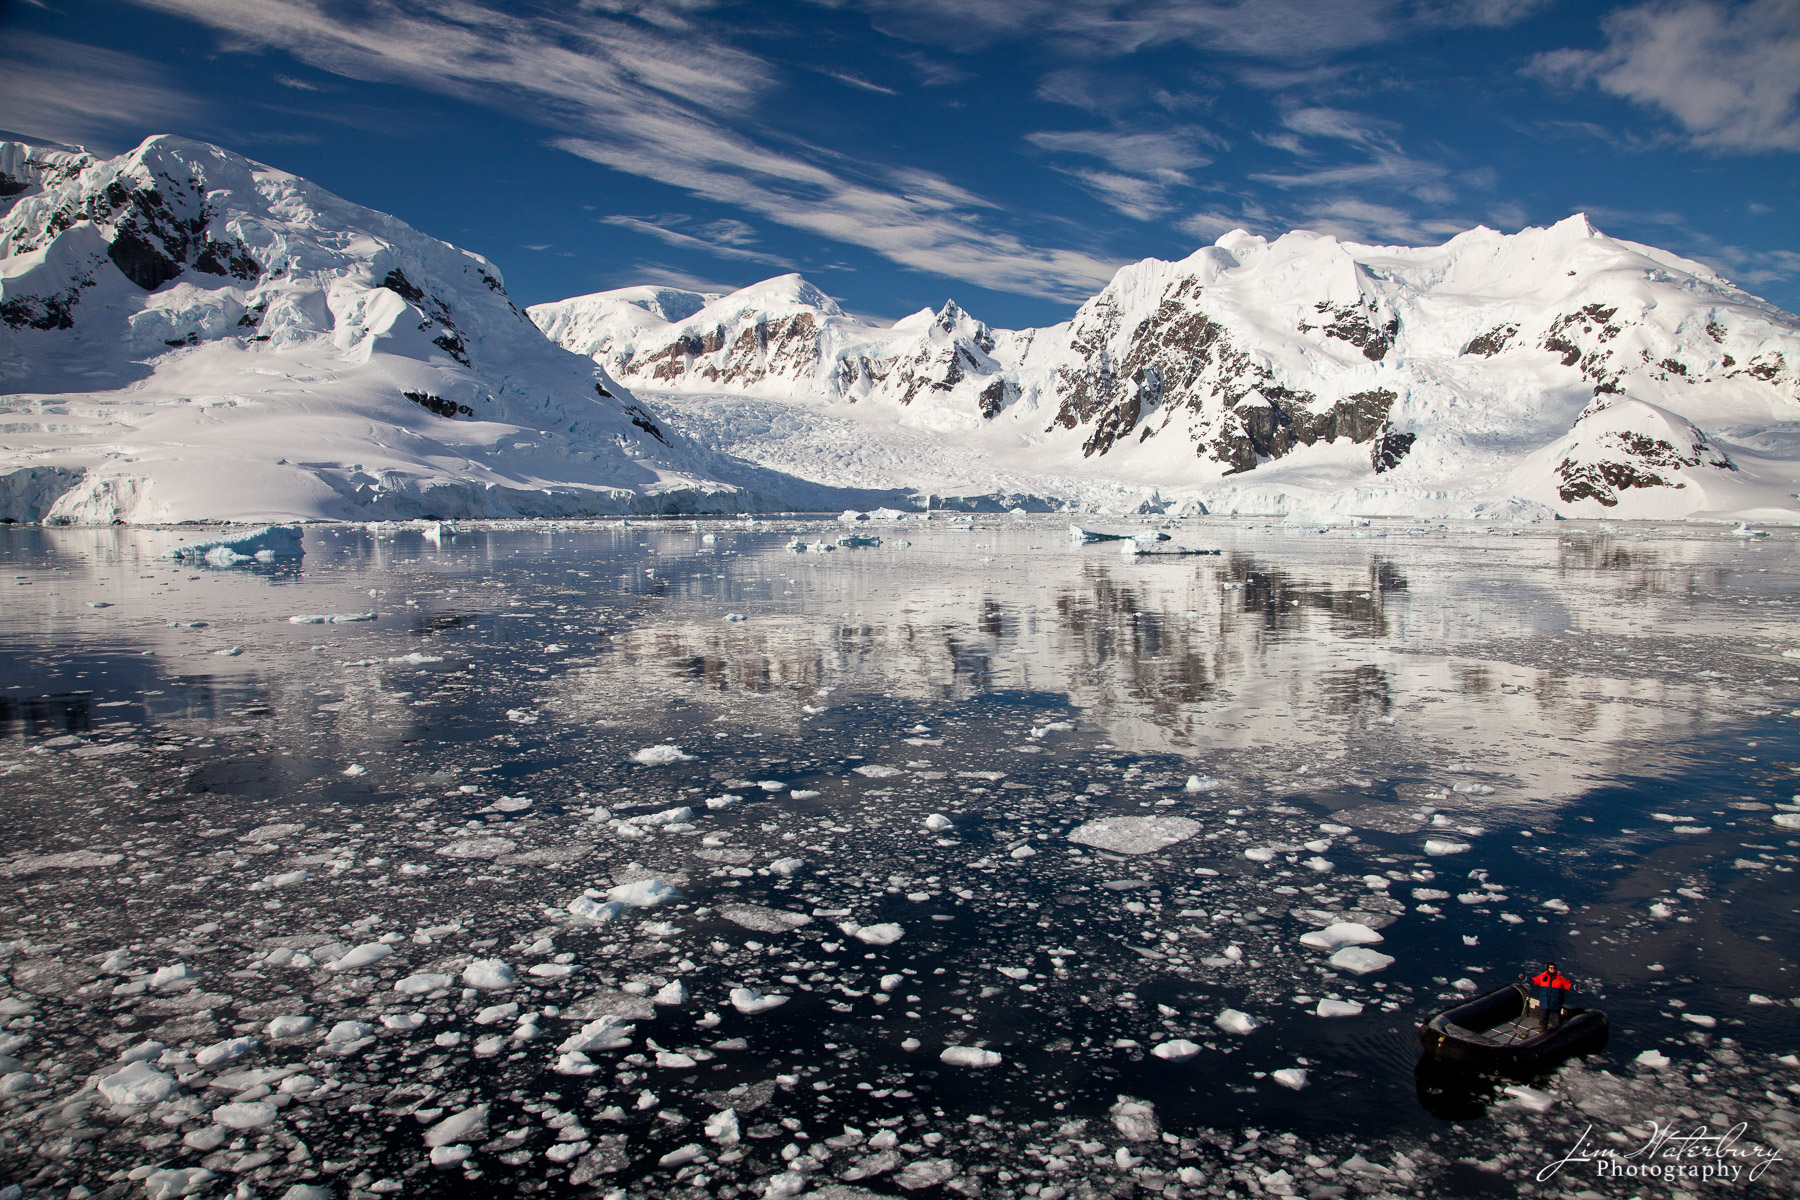 Antarctica, zodiac, boat, Paradise Harbour, mountains, broken ice, photo